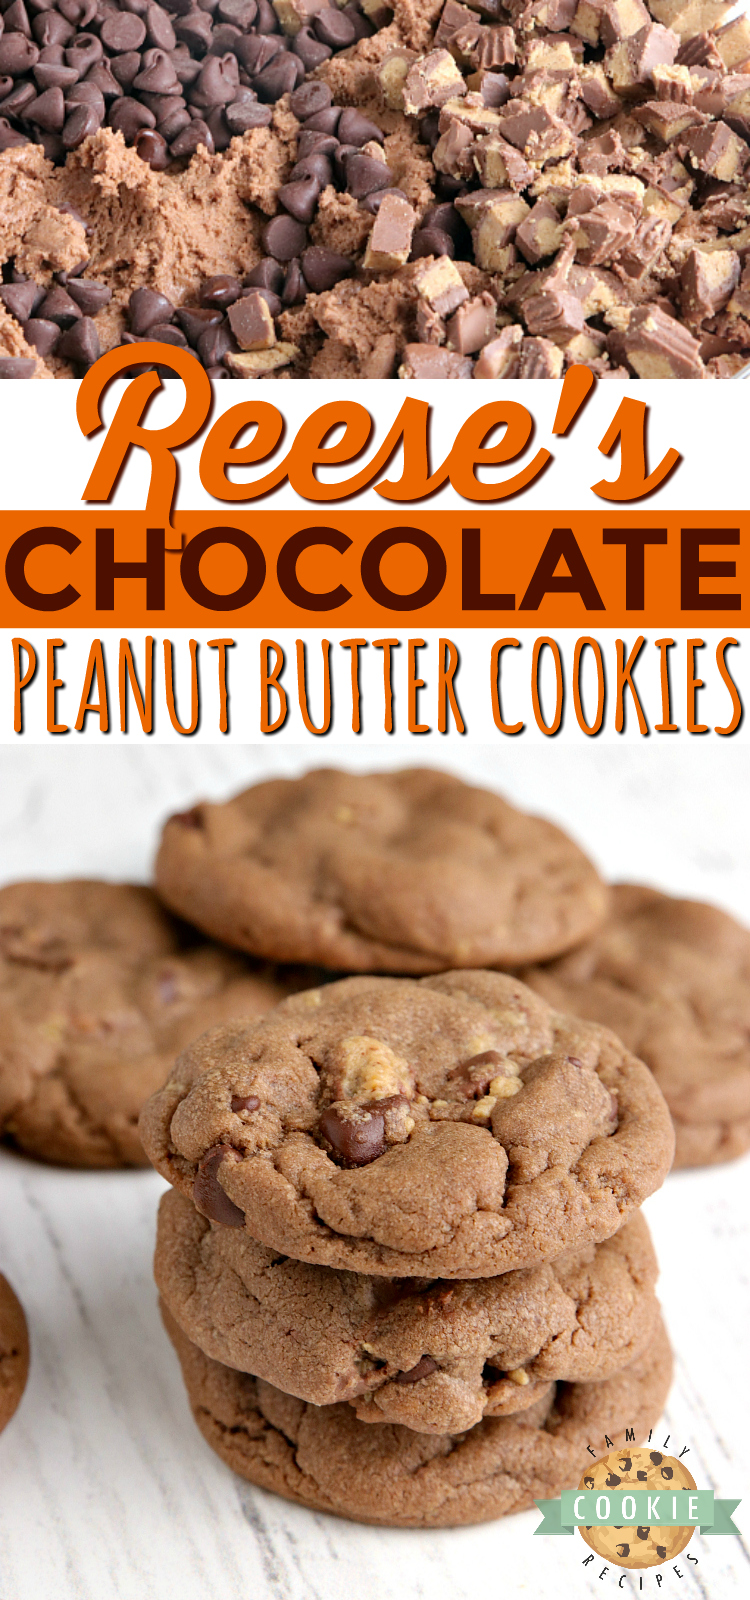 Reese's Chocolate Peanut Butter Cookies are full of chocolate, peanut butter and Reese's Peanut Butter Cups. Peanut butter cookie recipe that is soft, chewy and absolutely perfect! via @buttergirls